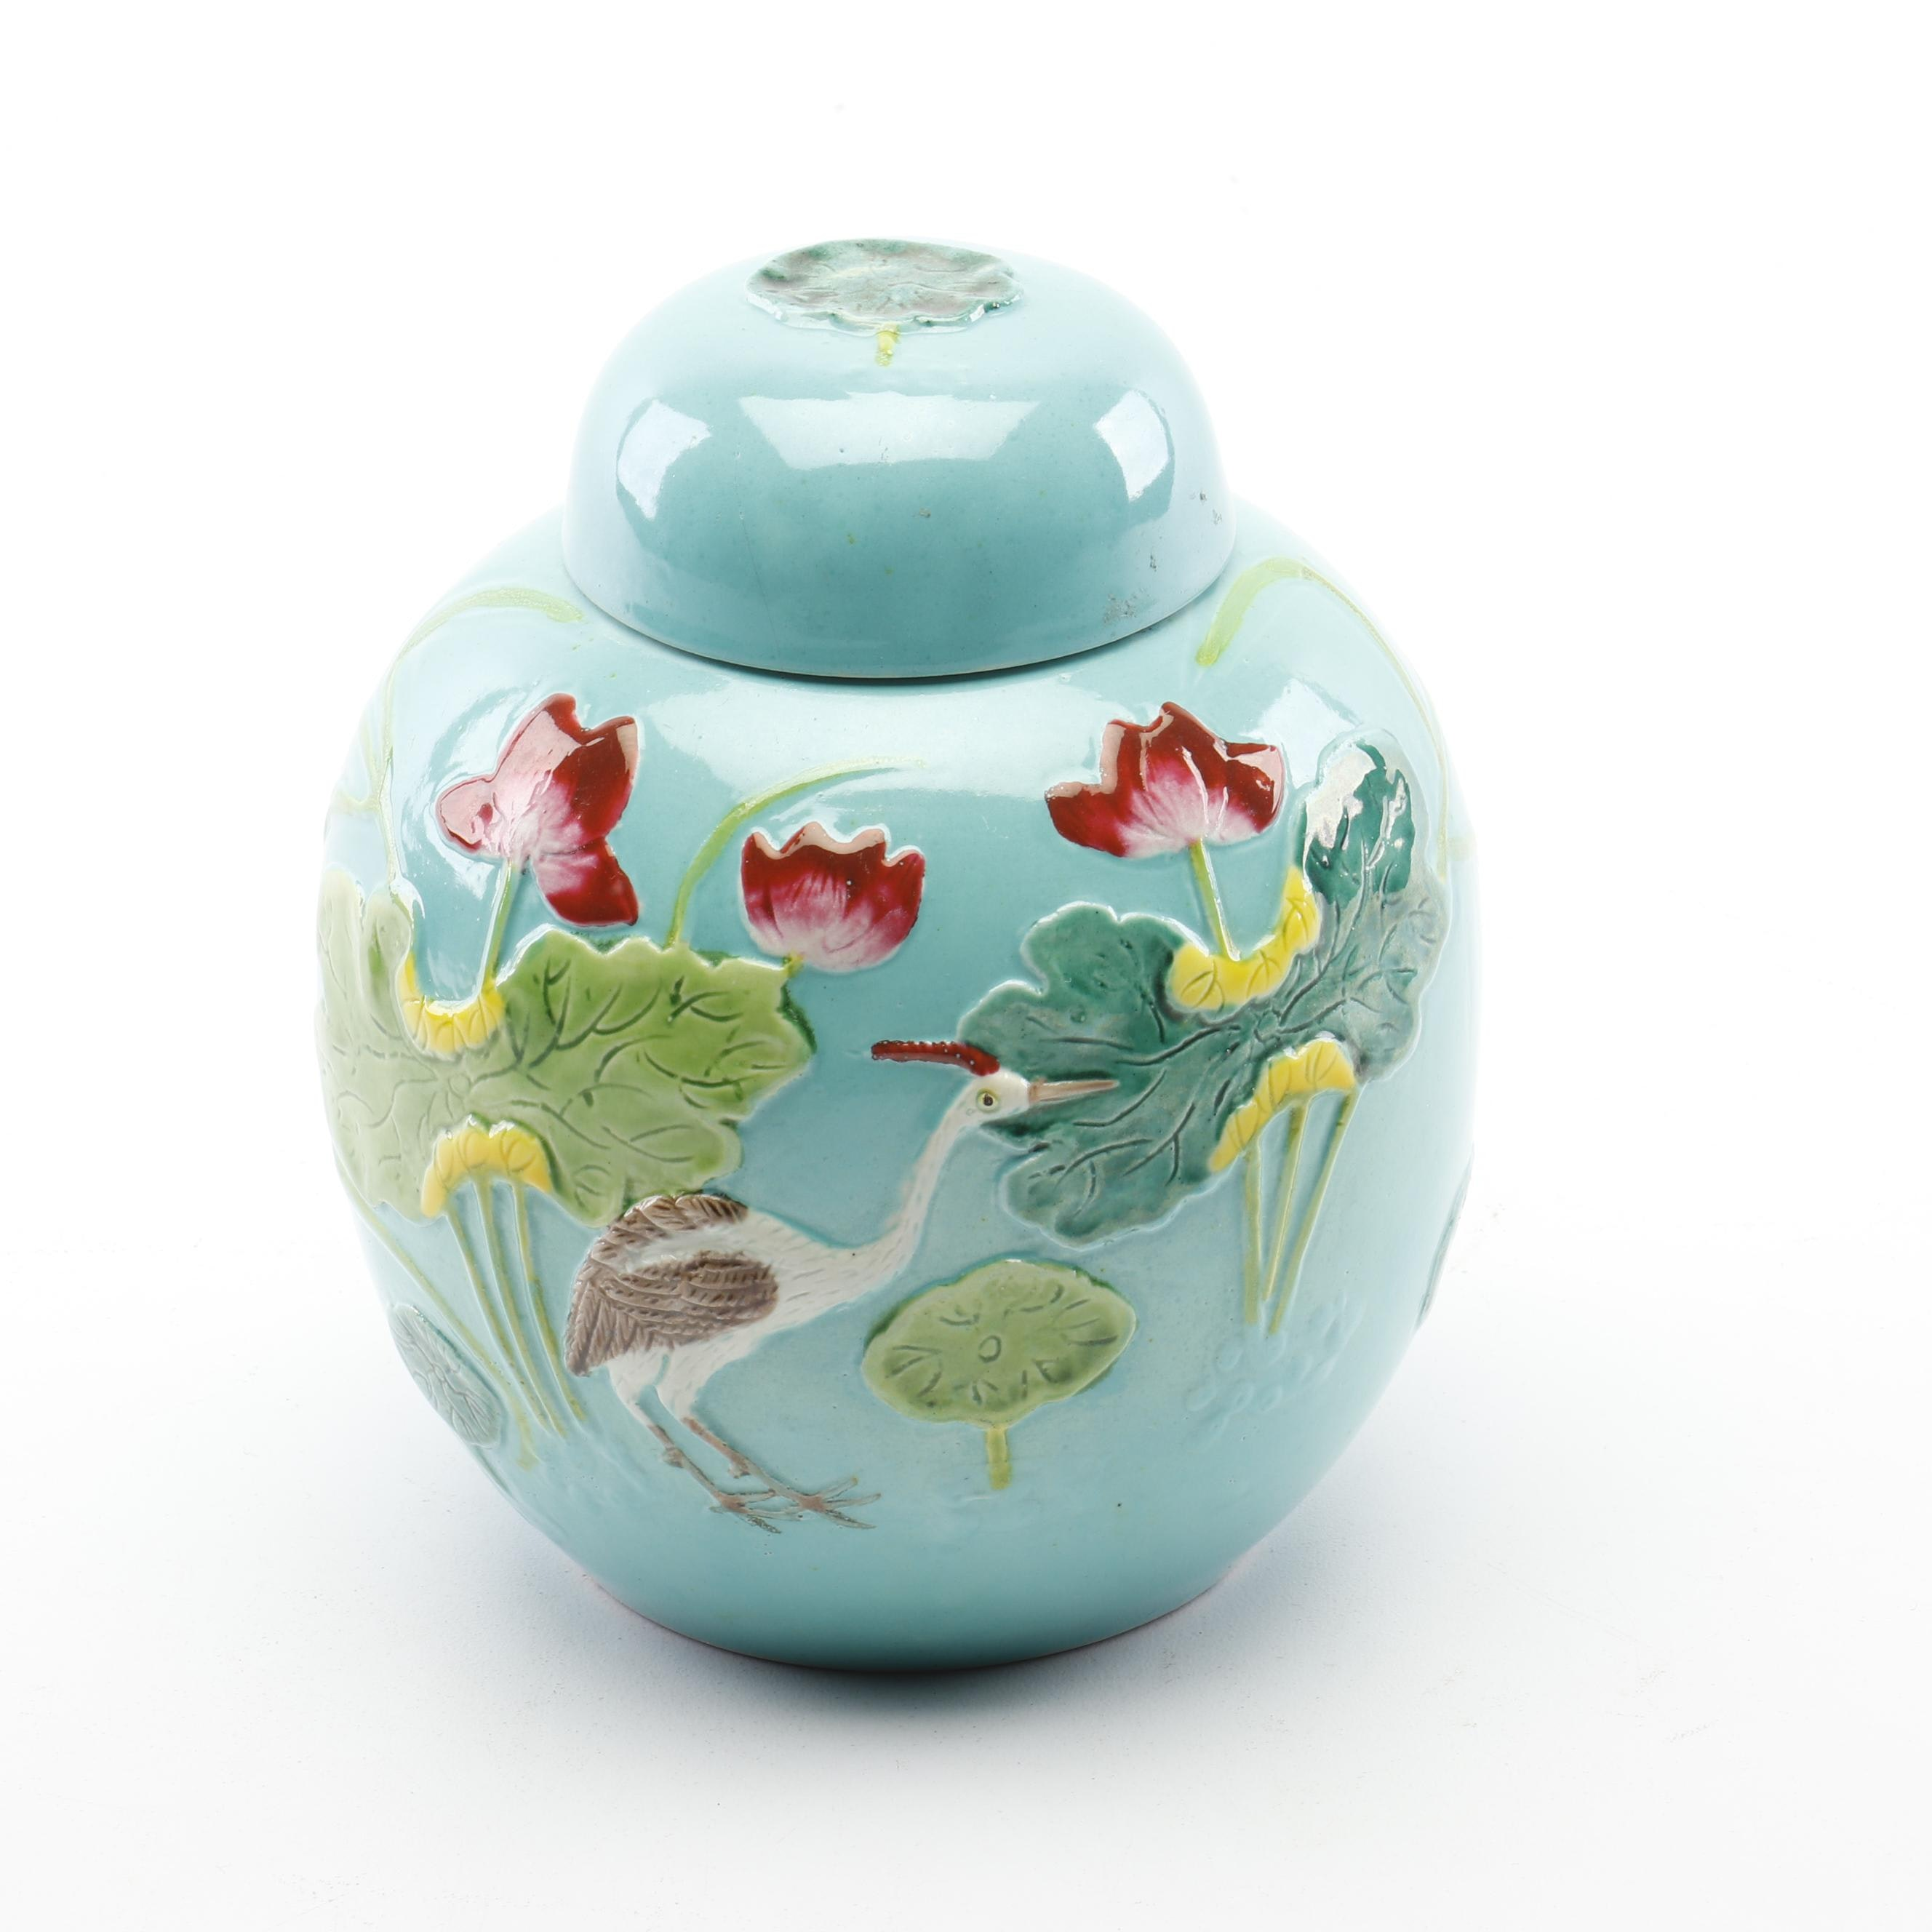 ChinesePorcelain Relief Ginger Jar in the Manner of Wang Bing Rong